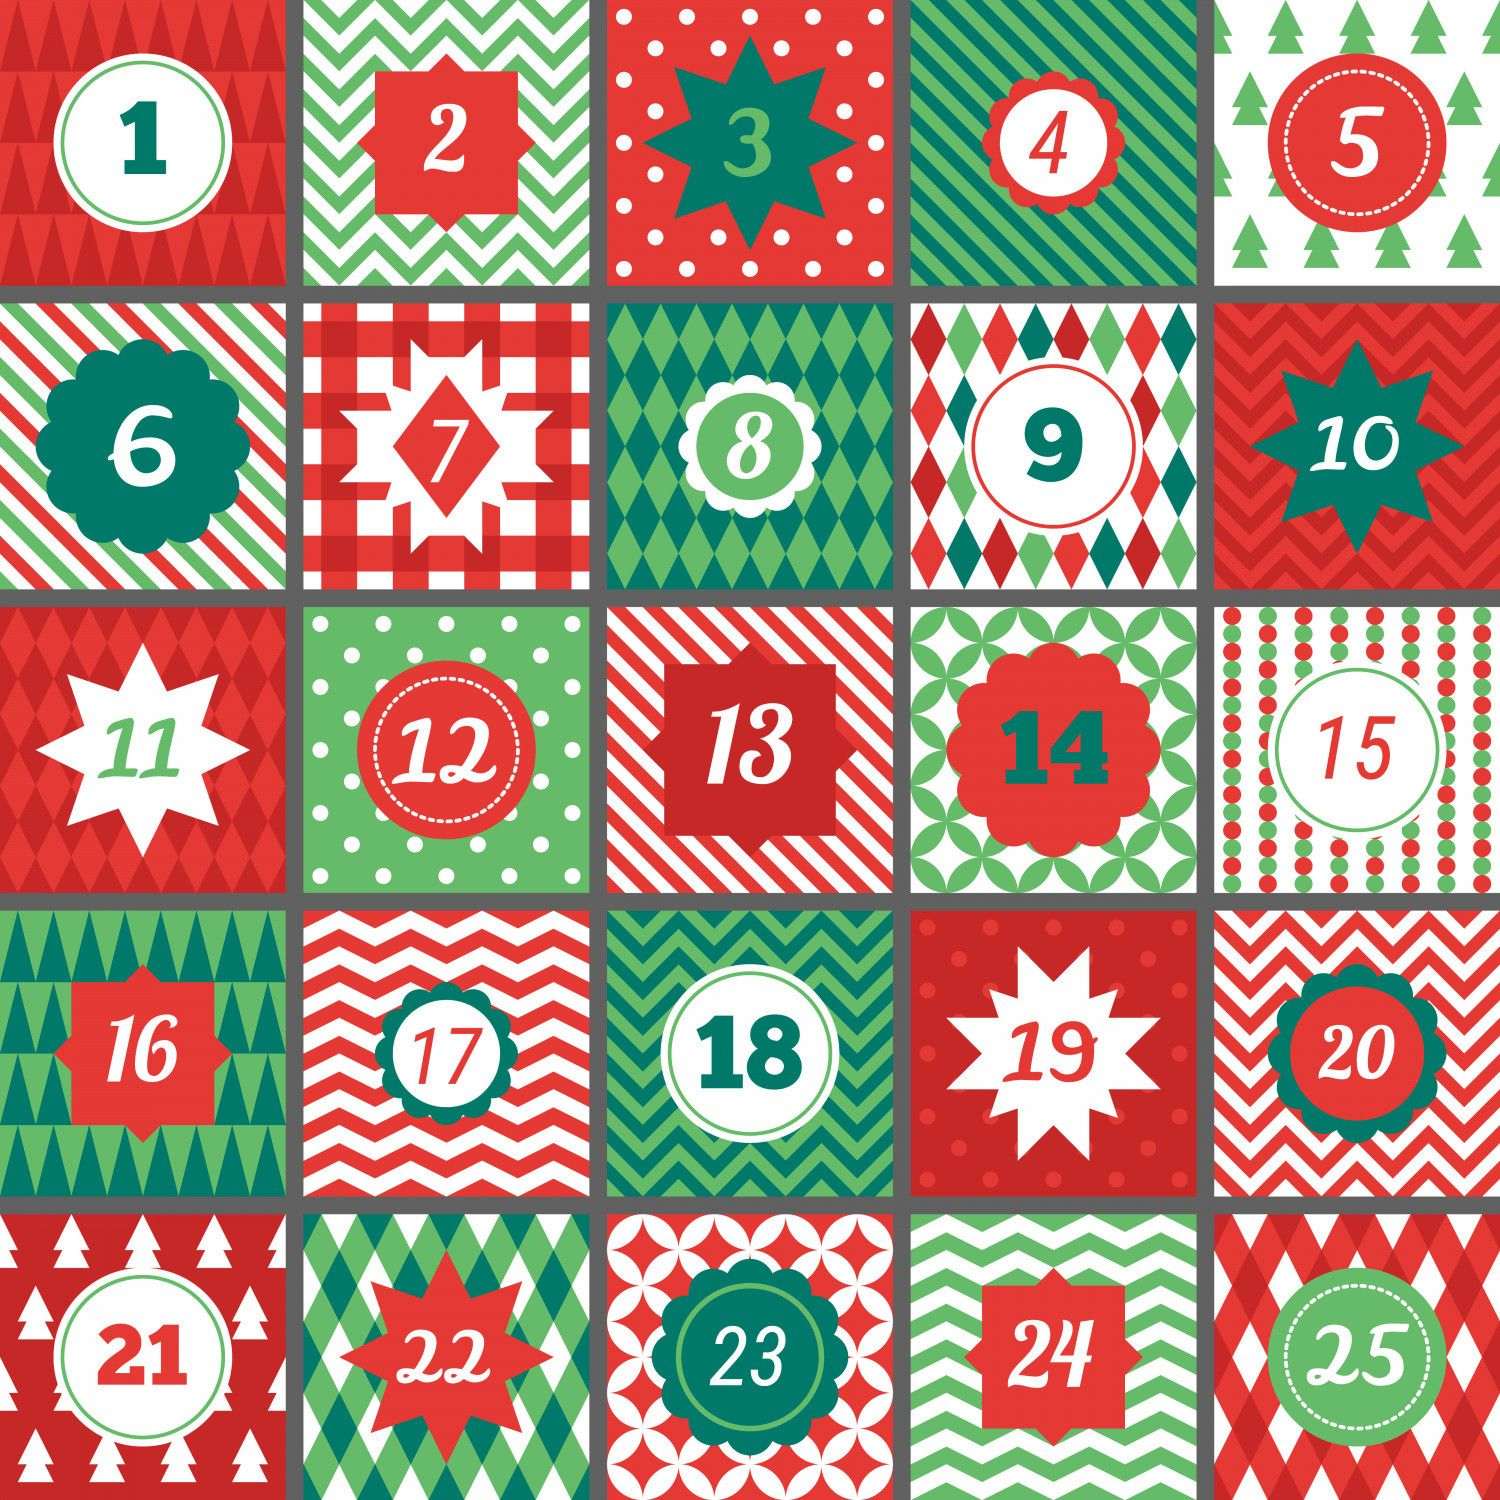 24 regali di design fino a natale for Regali natale design